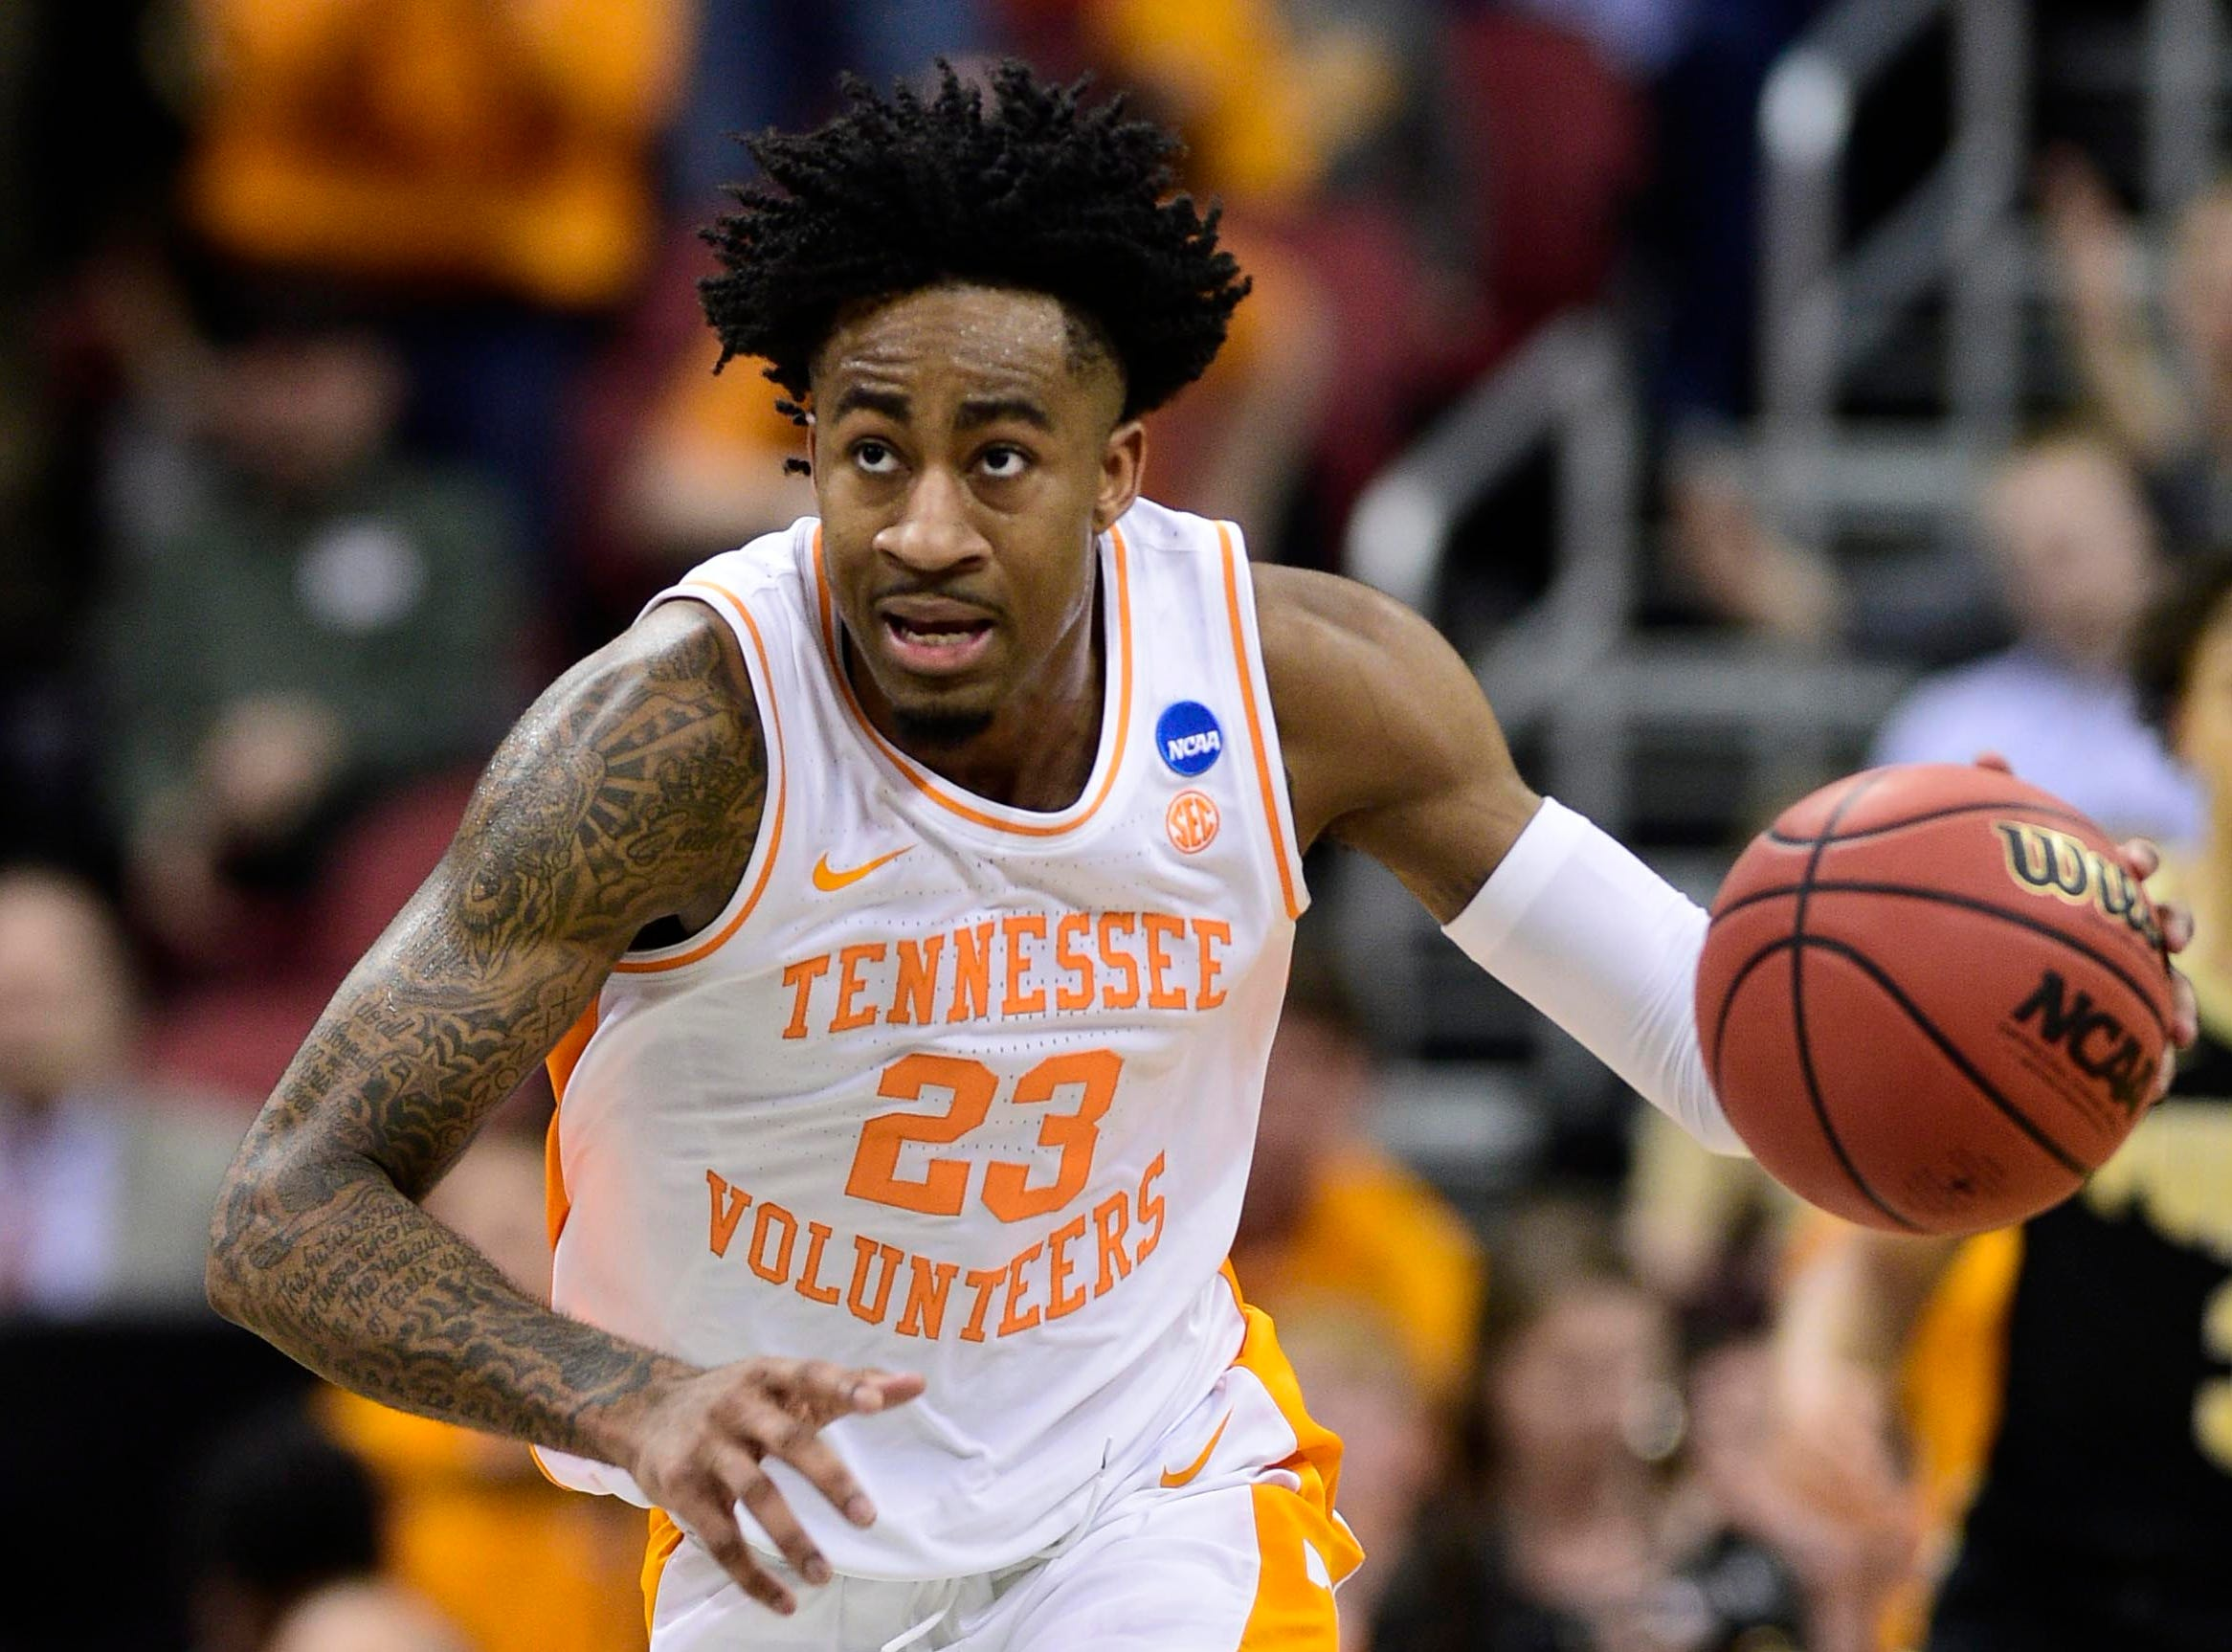 Mar 28, 2019; Louisville, KY, United States; Tennessee Volunteers guard Jordan Bowden (23) brings the ball up court during the first half in the semifinals of the south regional against the Purdue Boilermakers of the 2019 NCAA Tournament at KFC Yum Center. Mandatory Credit: Thomas J. Russo-USA TODAY Sports